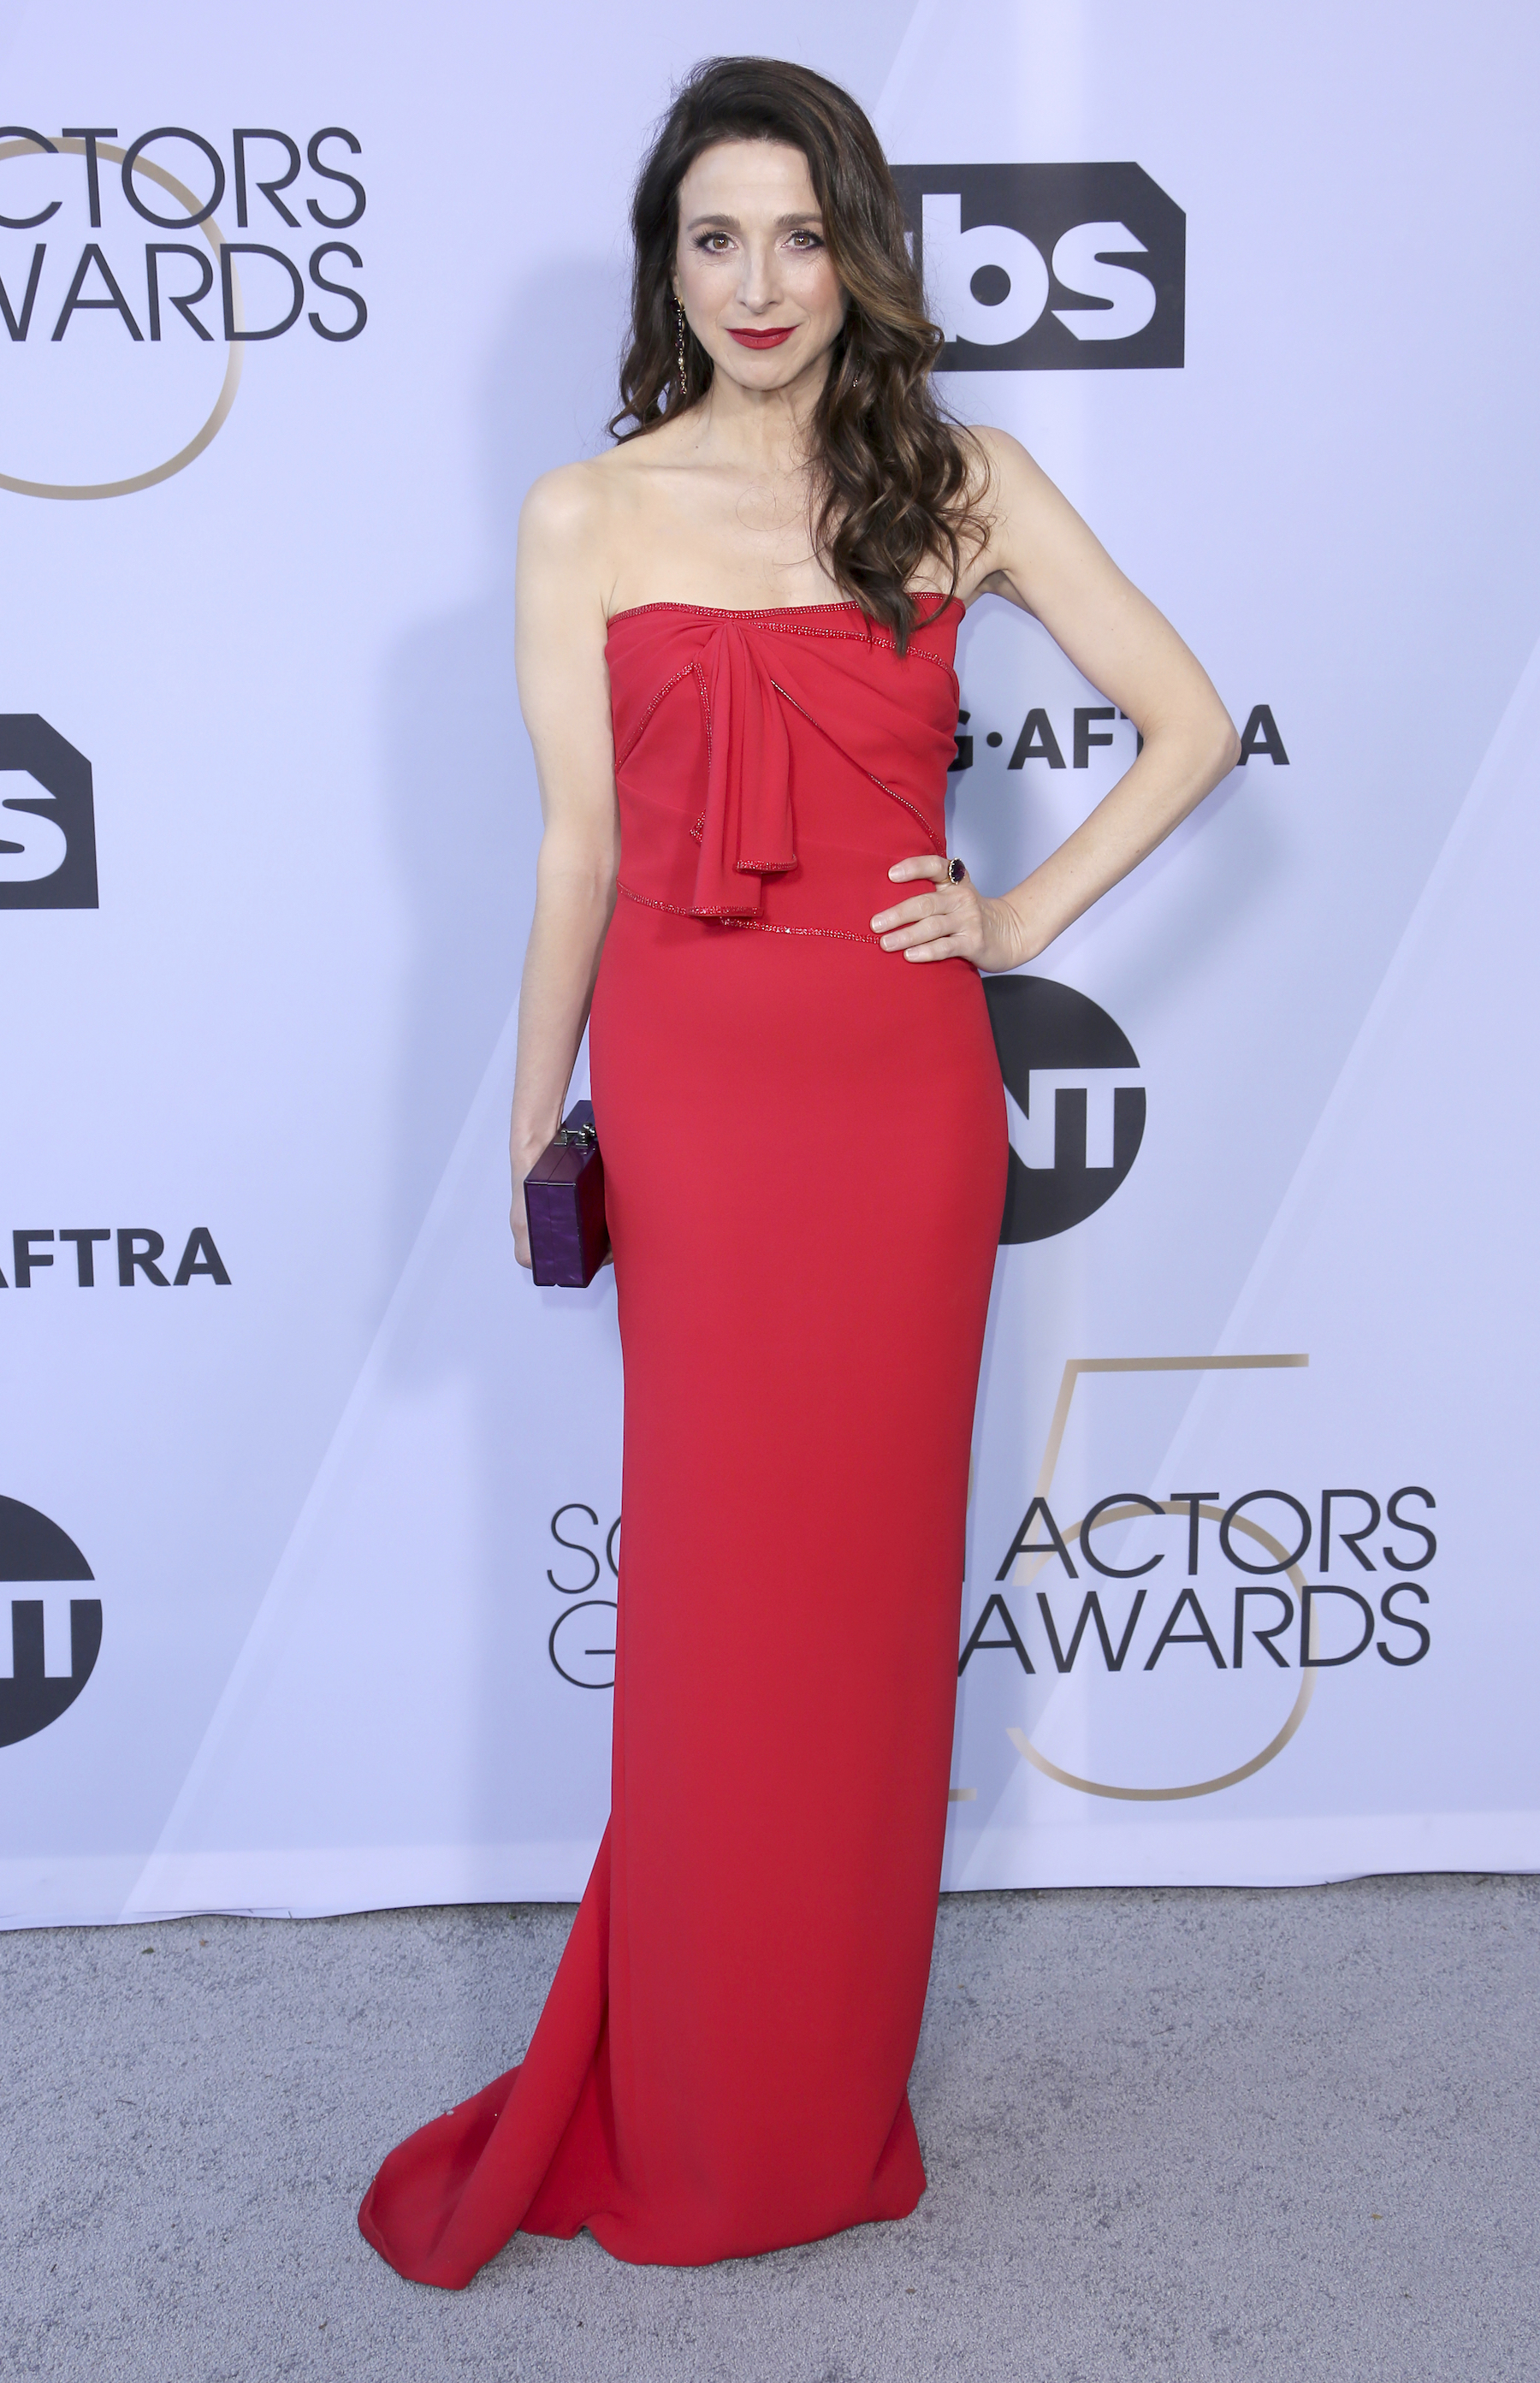 "<div class=""meta image-caption""><div class=""origin-logo origin-image ap""><span>AP</span></div><span class=""caption-text"">Marin Hinkle arrives at the 25th annual Screen Actors Guild Awards at the Shrine Auditorium & Expo Hall on Sunday, Jan. 27, 2019, in Los Angeles. (Willy Sanjuan/Invision/AP)</span></div>"